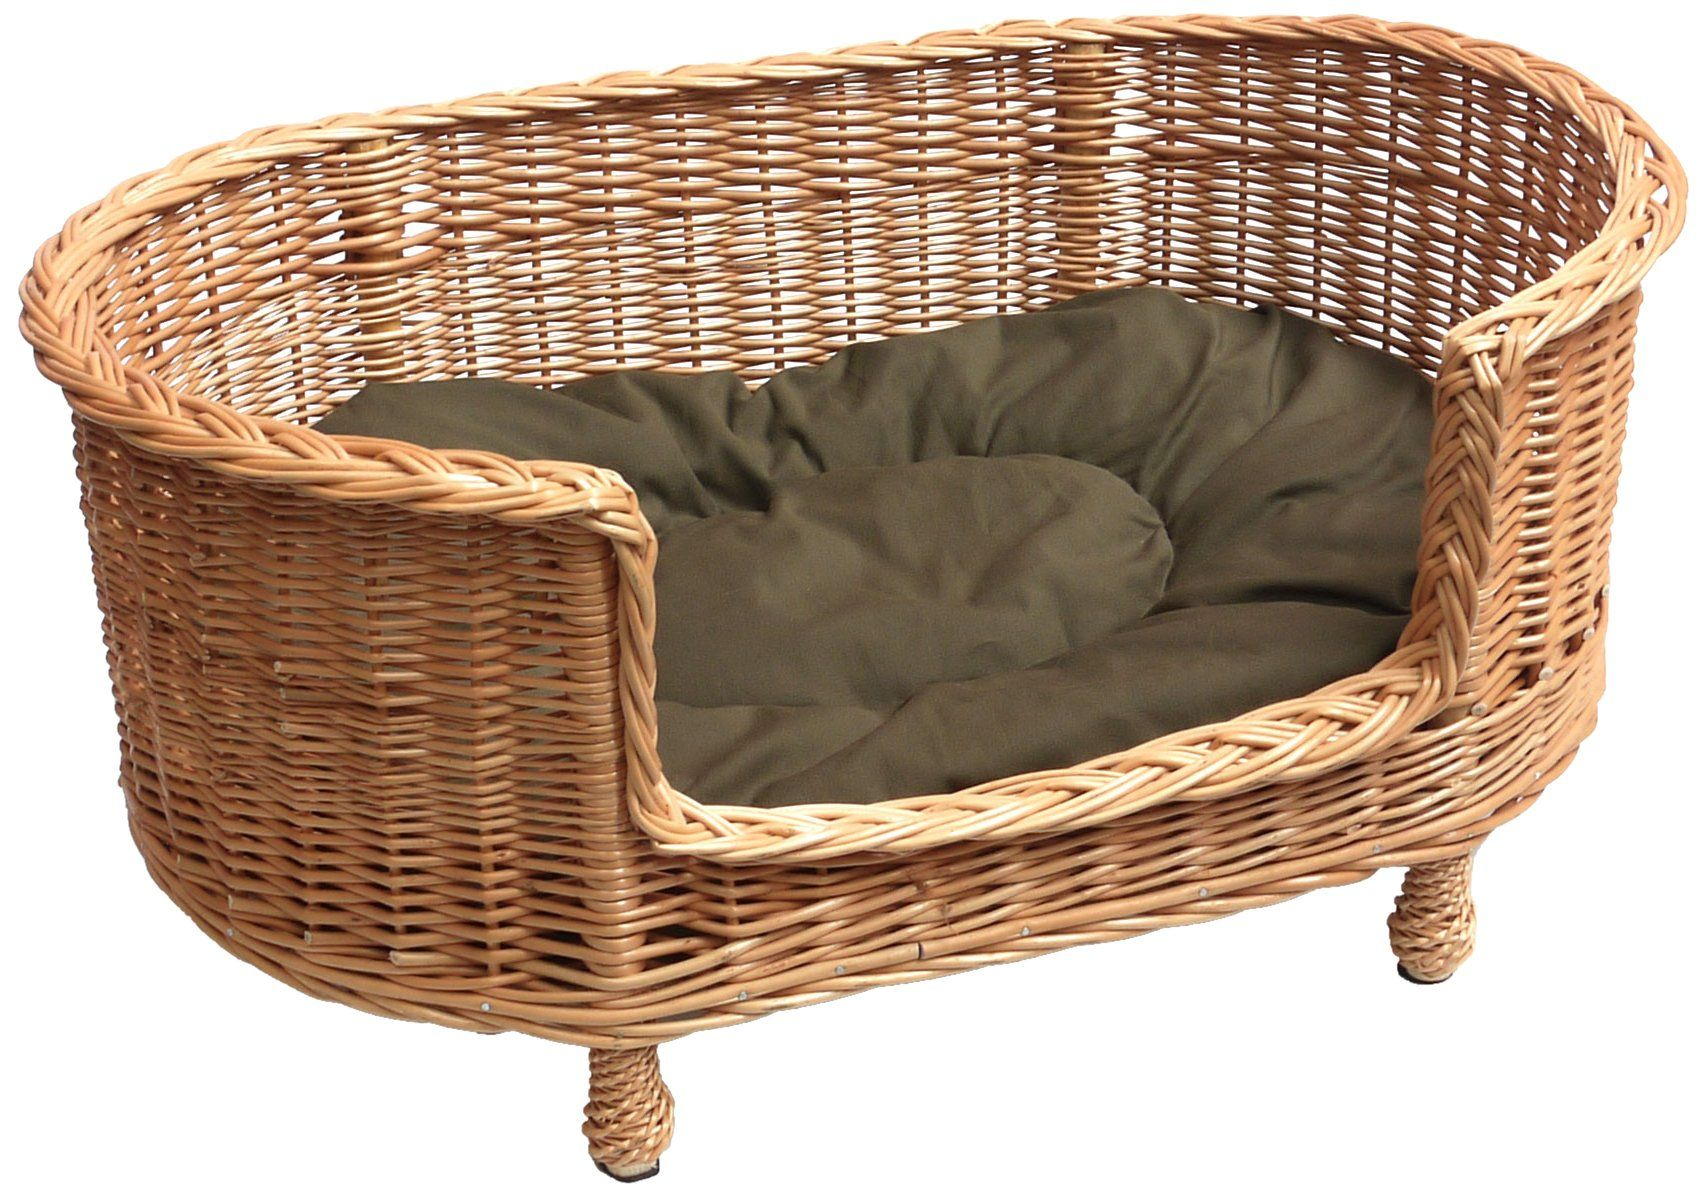 Raised Dog Beds for Large Dogs UK (With images) Wicker